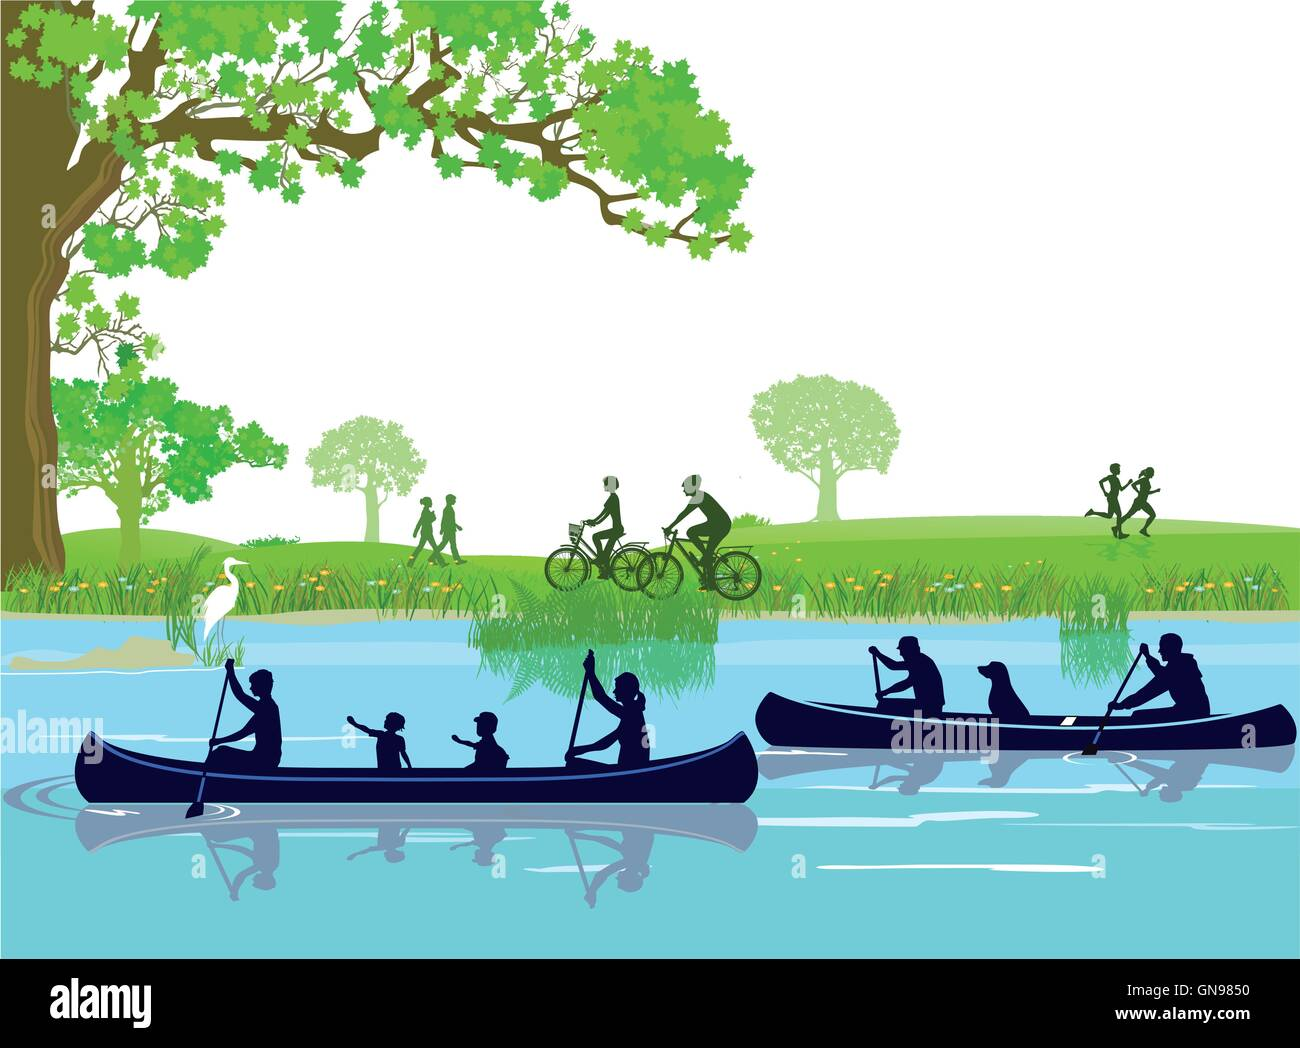 Canoeing in the leisure - Stock Vector